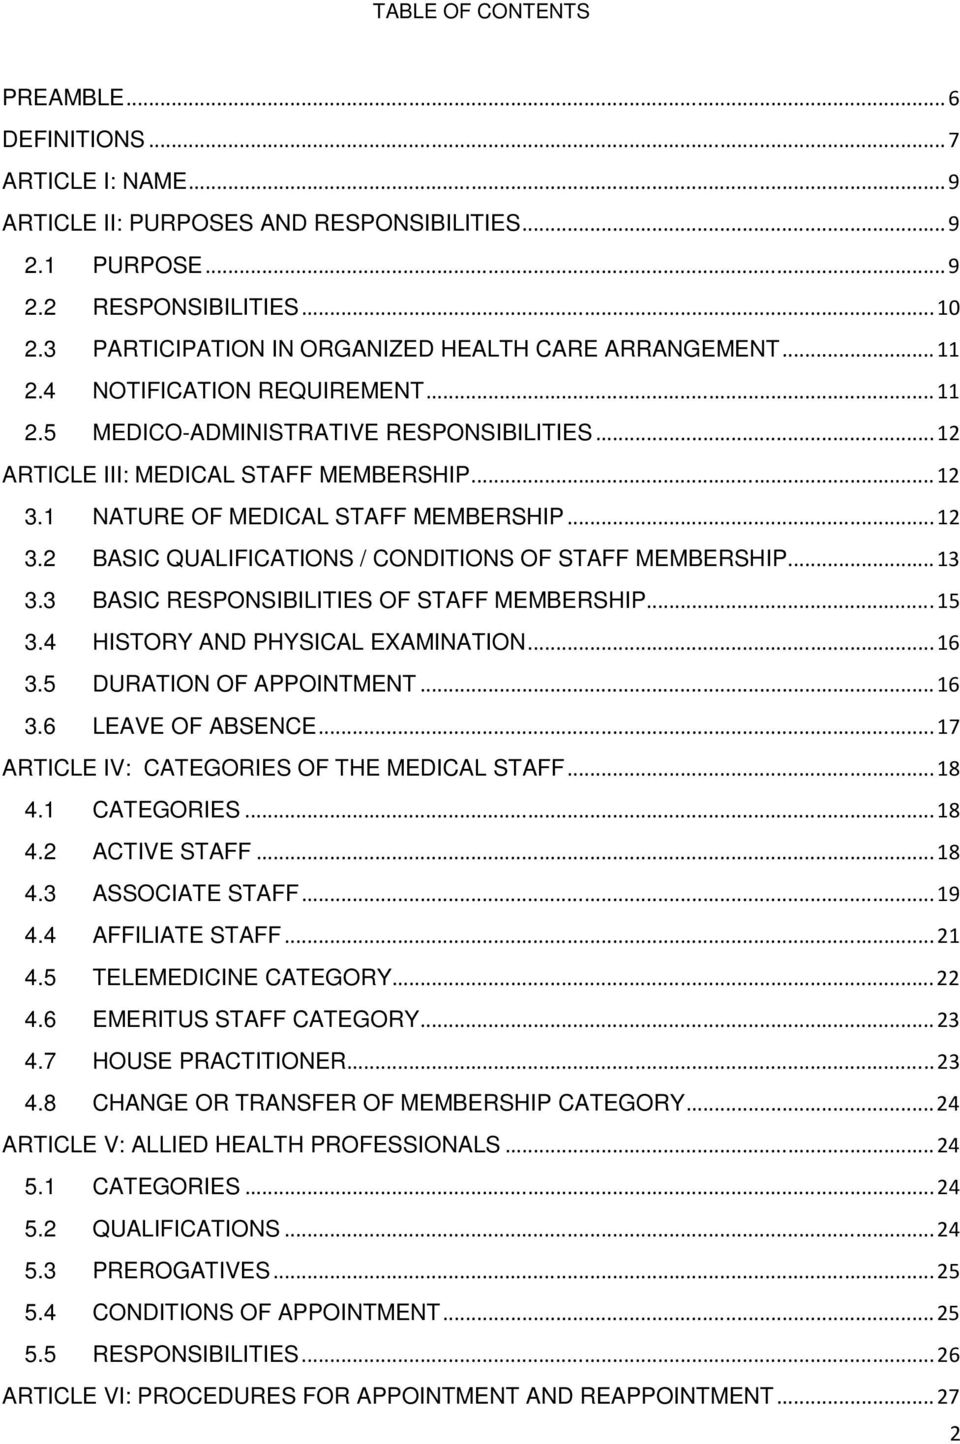 1 NATURE OF MEDICAL STAFF MEMBERSHIP... 12 3.2 BASIC QUALIFICATIONS / CONDITIONS OF STAFF MEMBERSHIP... 13 3.3 BASIC RESPONSIBILITIES OF STAFF MEMBERSHIP... 15 3.4 HISTORY AND PHYSICAL EXAMINATION.